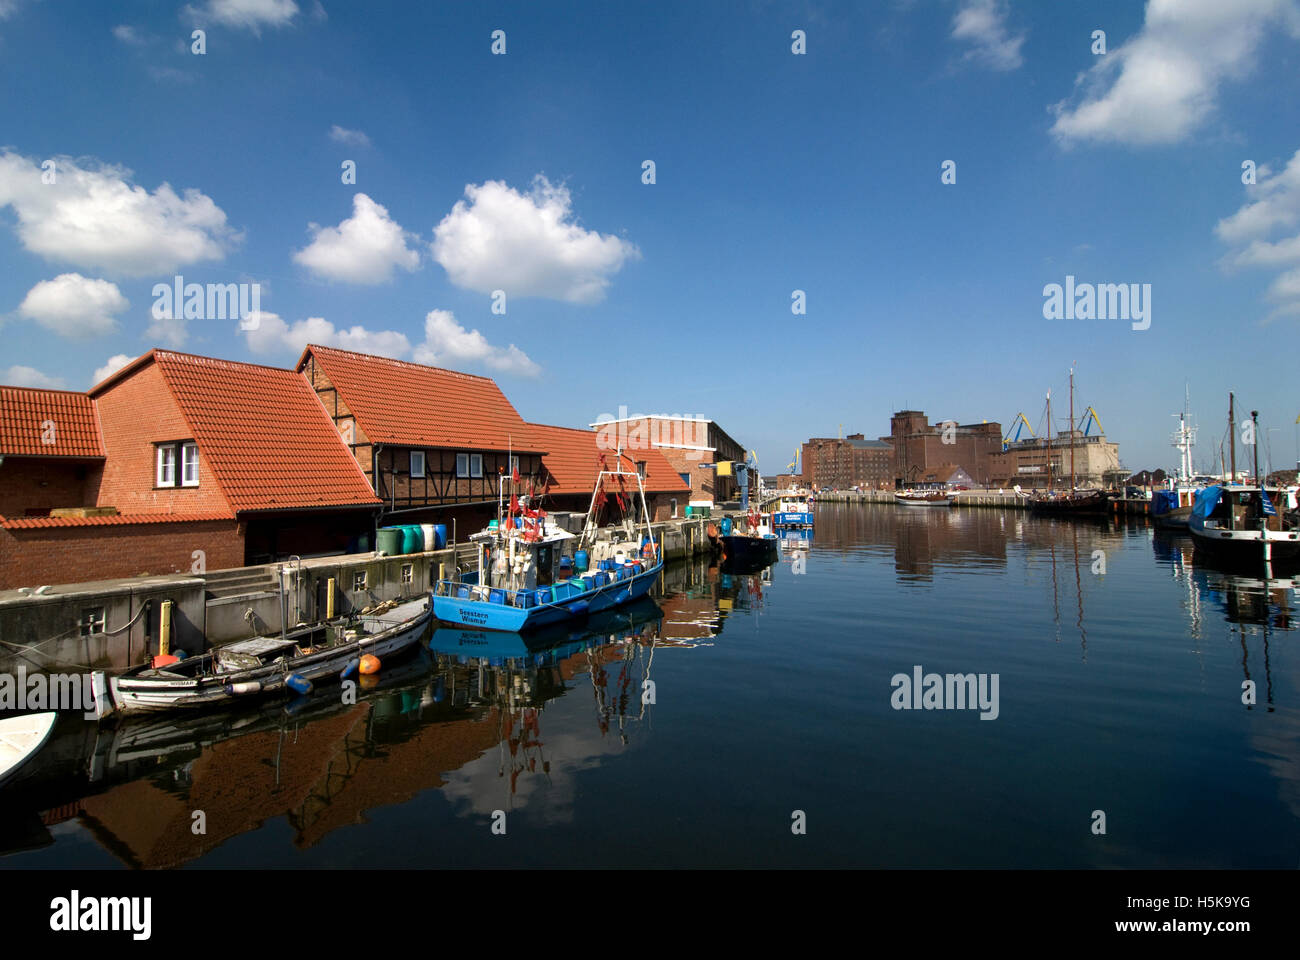 Old Port, Wismar, Mecklenburg-Western Pomerania - Stock Image